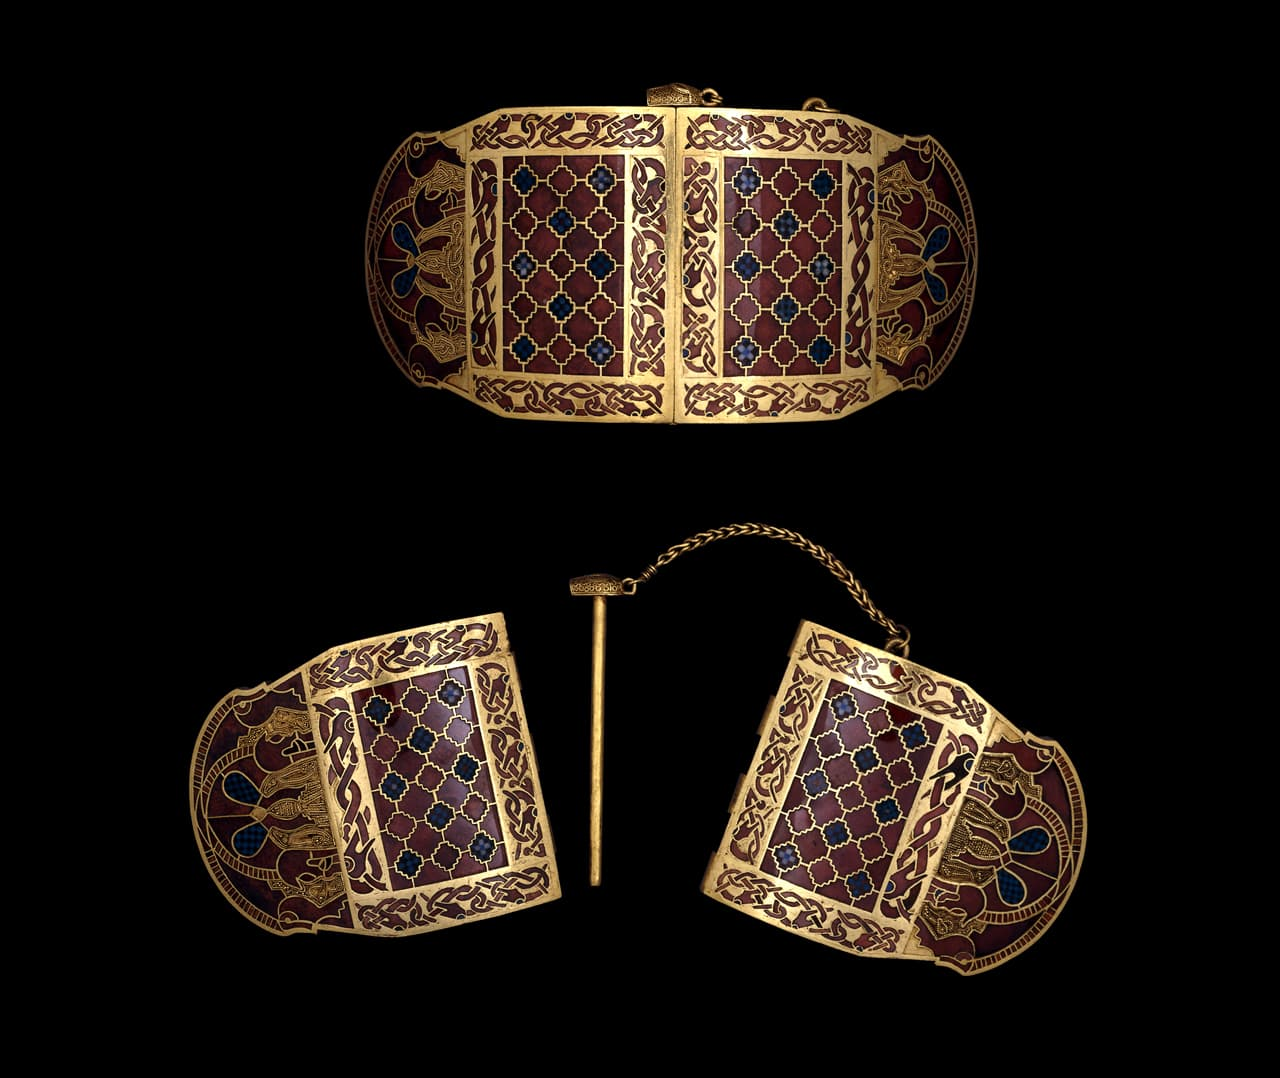 Sutton hoo global perspectives on british archaeology for The sutton